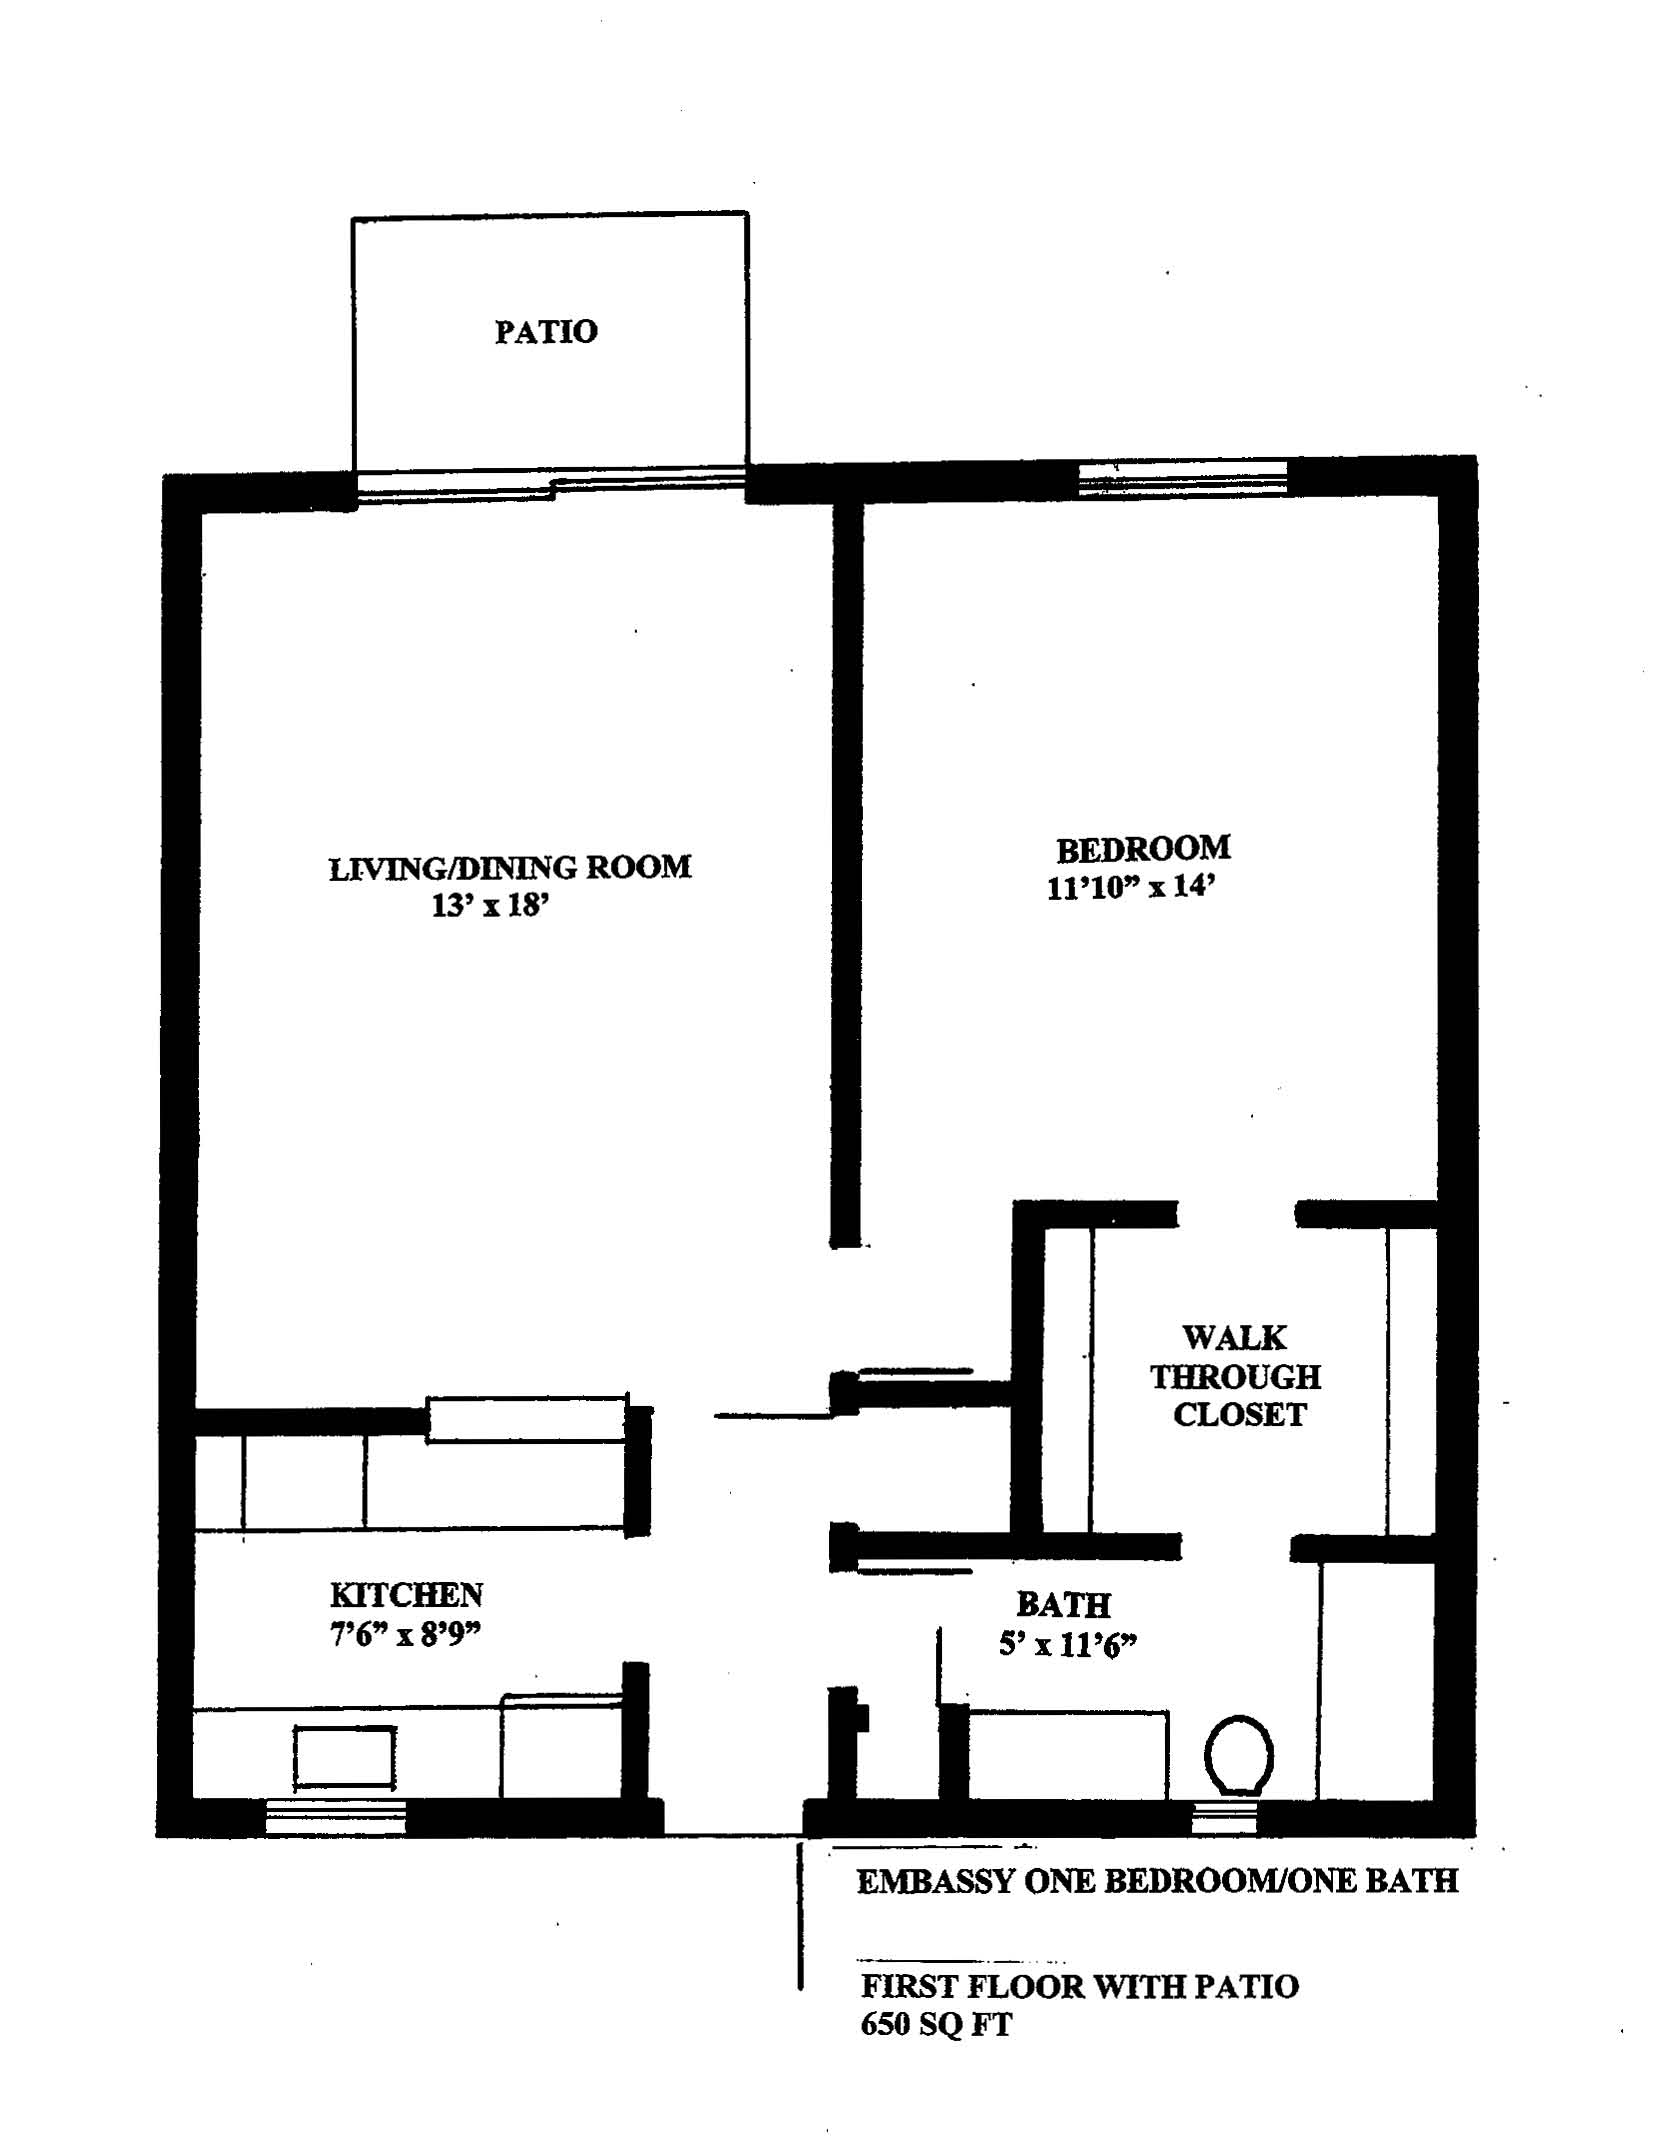 WestShore Apartments/Embassy Apartments - Floorplan - EMBASSY 1B - PATIO - One Available.  Located at Embassy Apartments